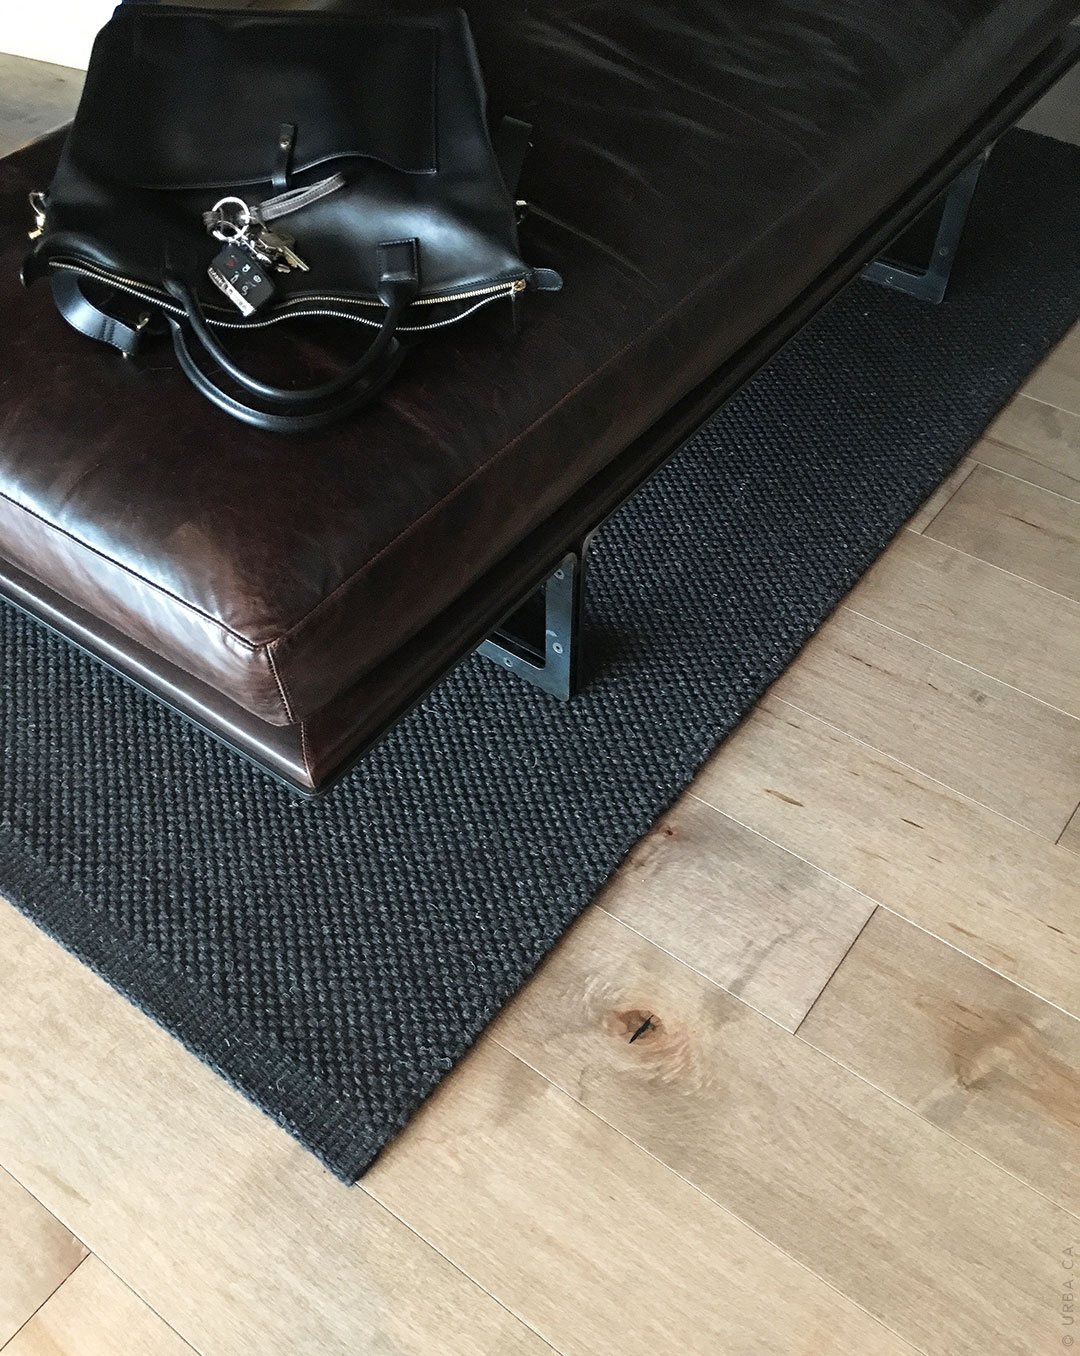 Black Hand Woven Rug Made From Natural Wool in a Modern Entrance | Custom Rug Montreal | Urba Rugs Canada